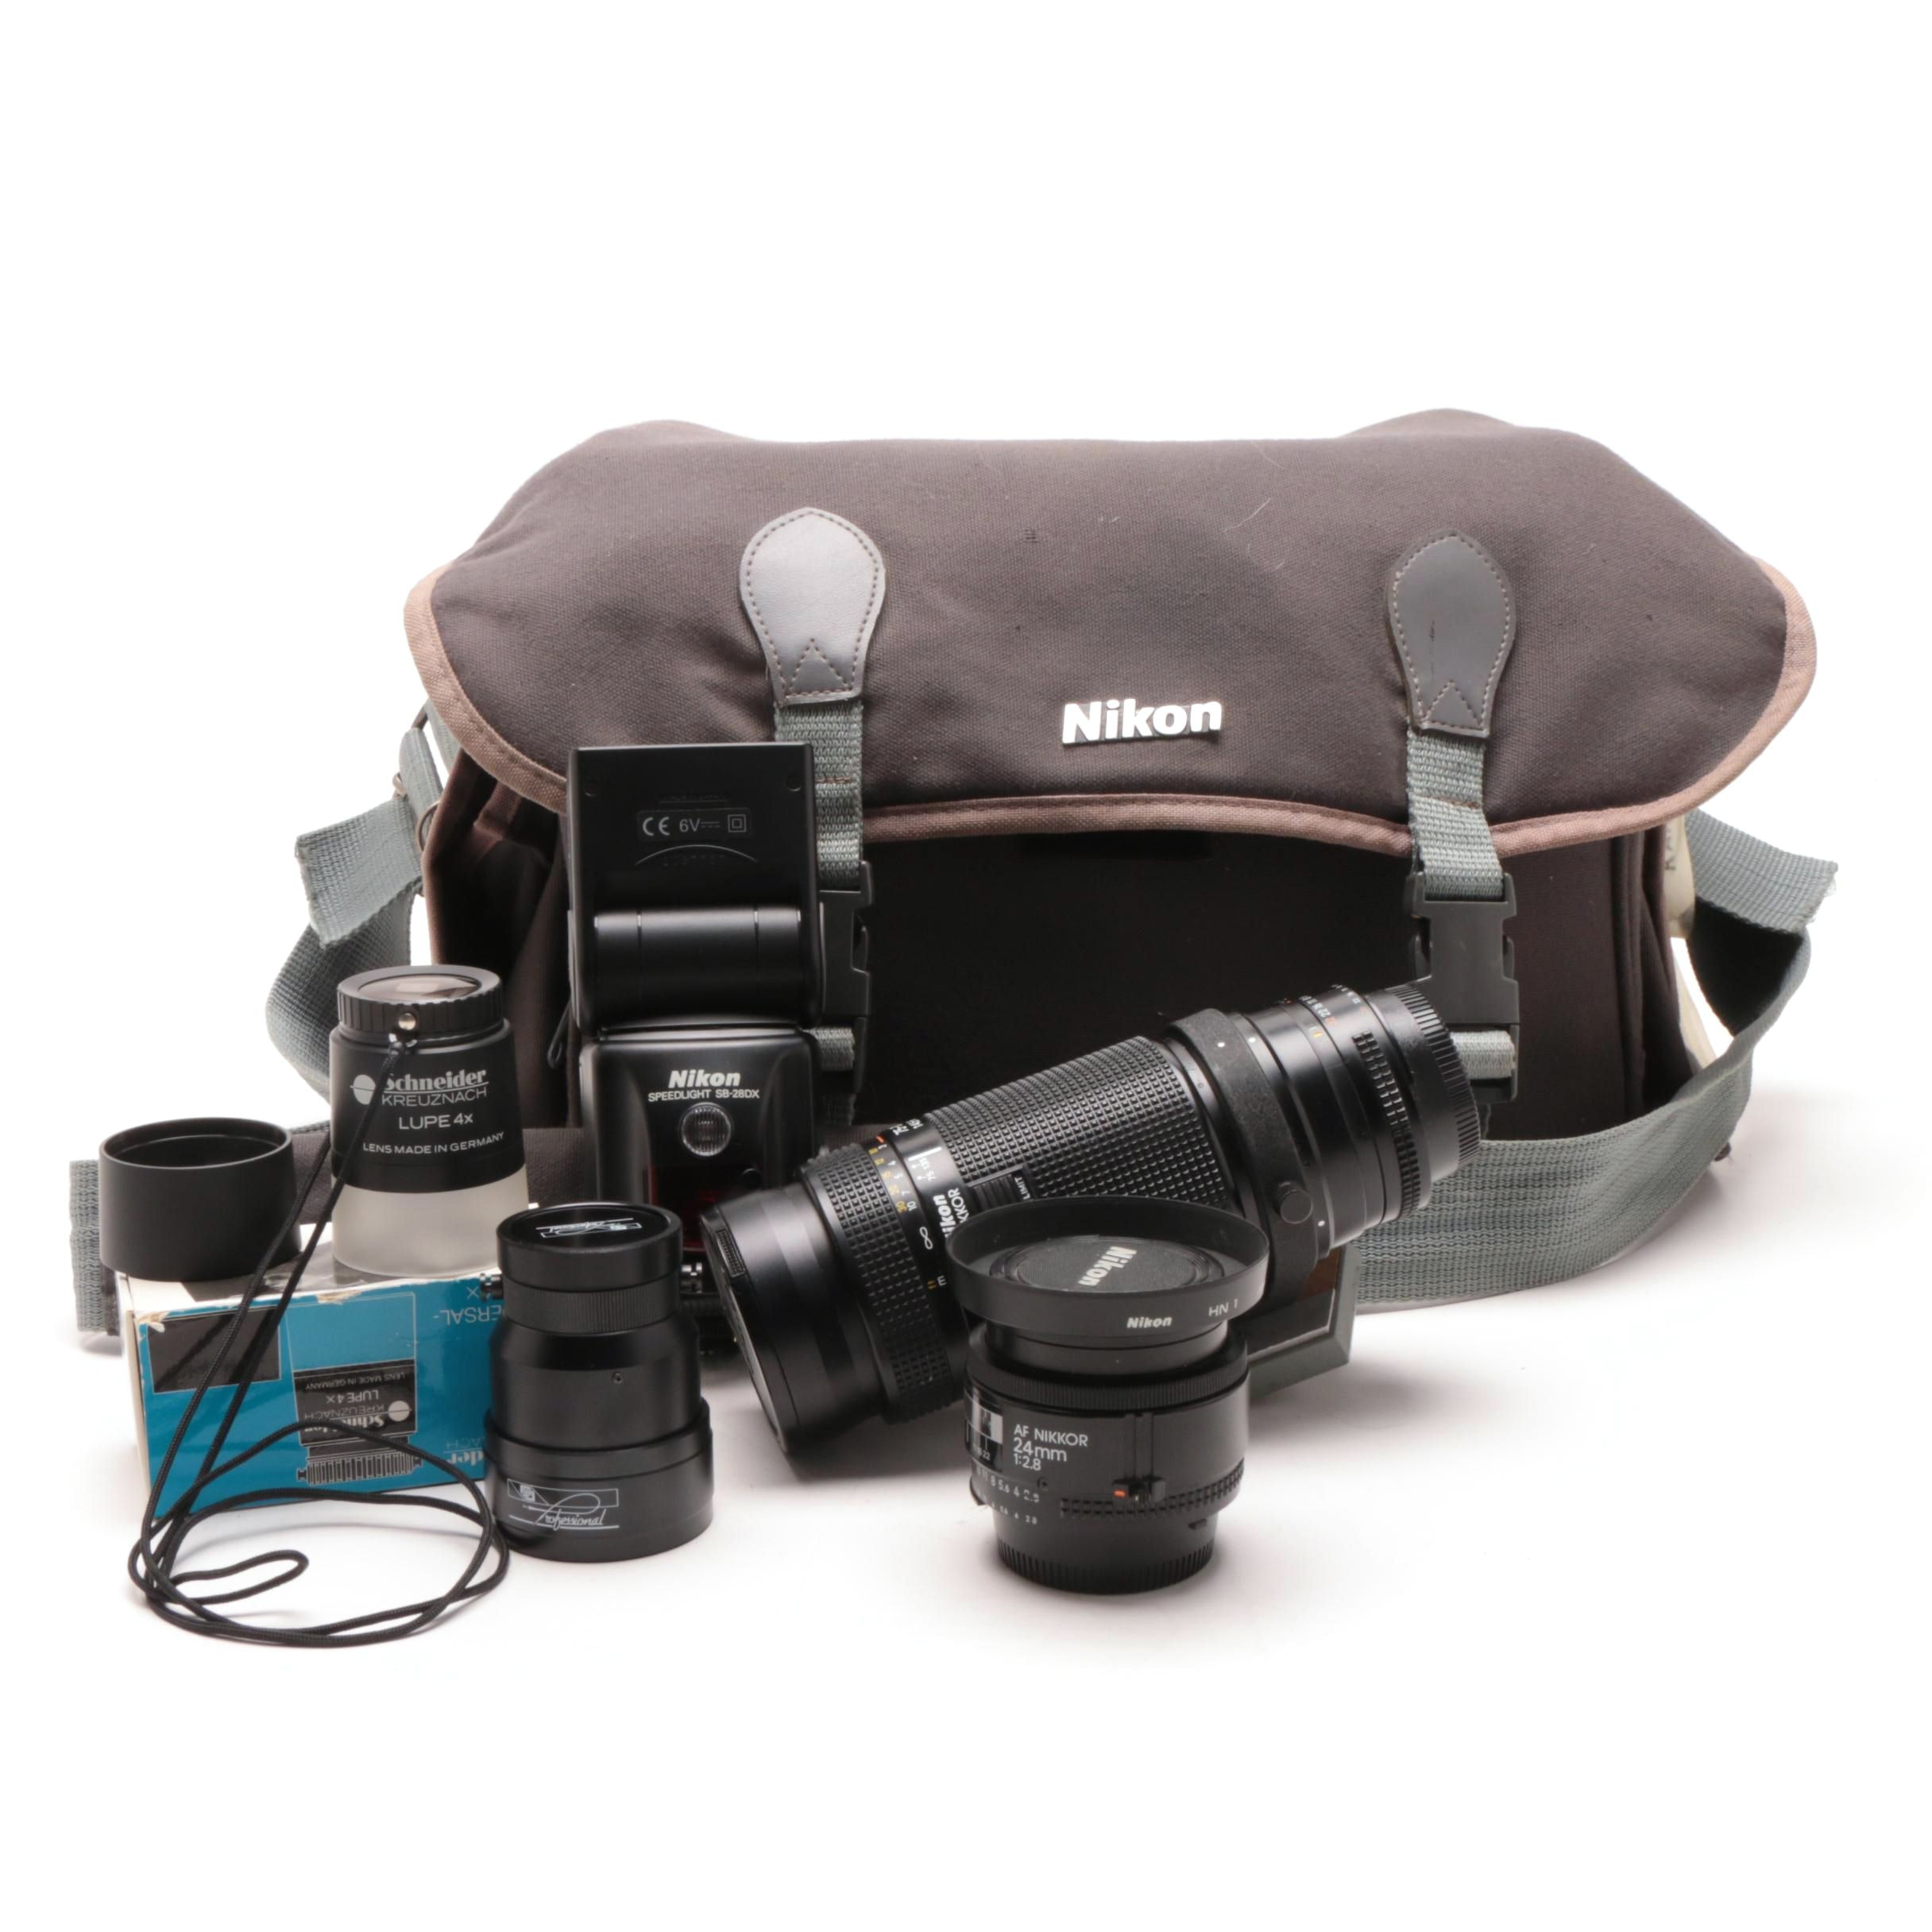 Nikon Telephoto Lens and Accessories